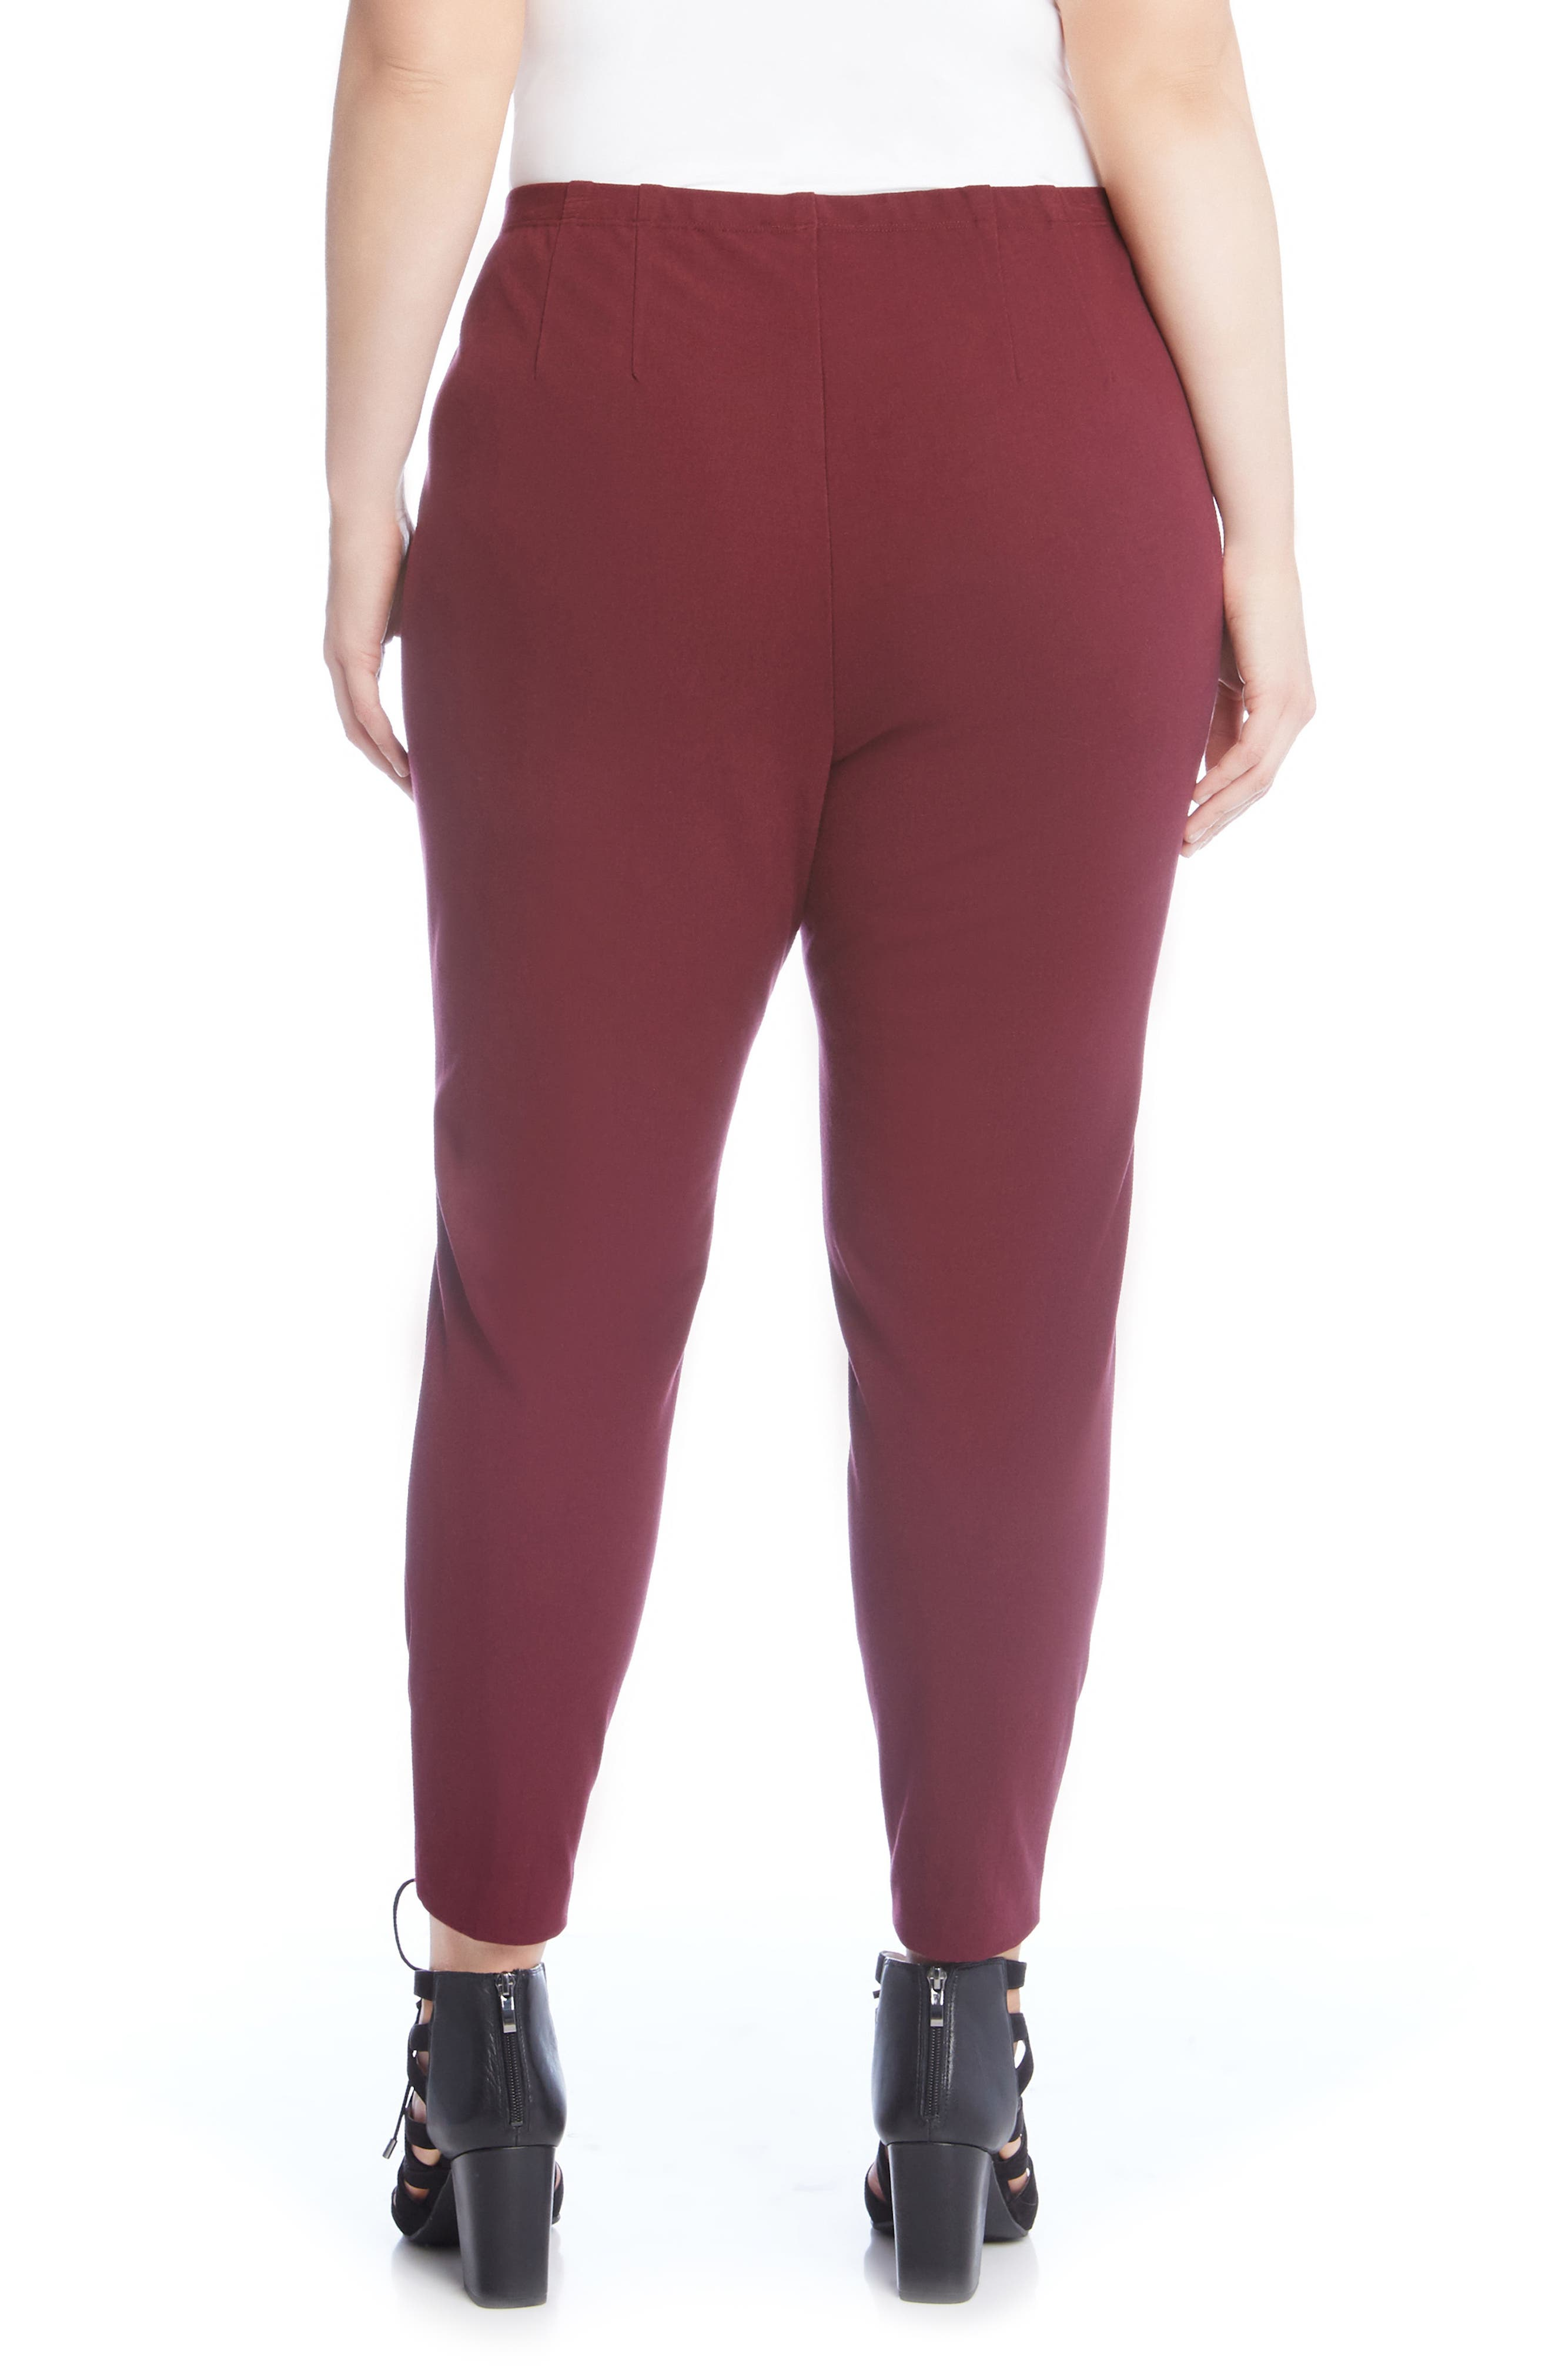 Piper High-Waist Pants,                             Alternate thumbnail 2, color,                             Burgundy